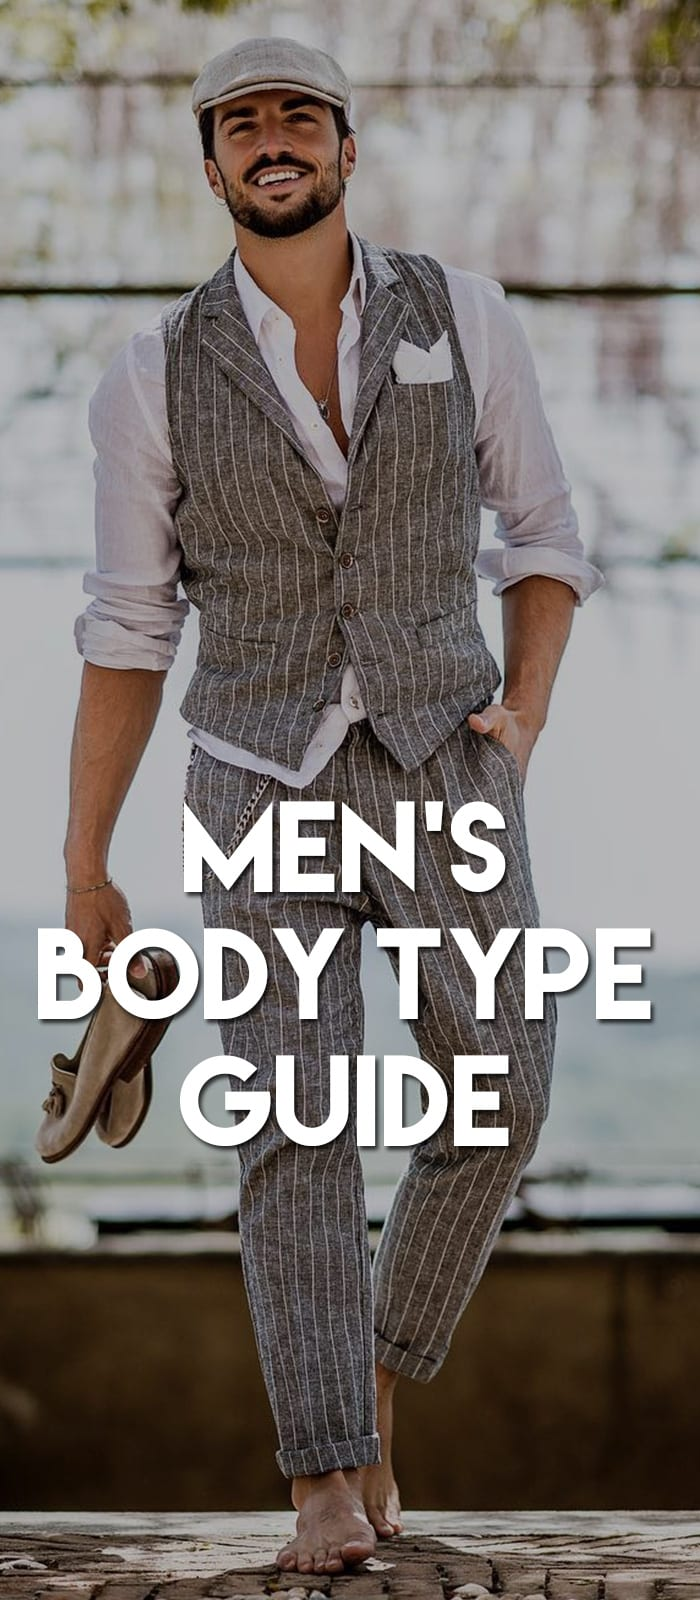 Men's-Body-Type-Guide